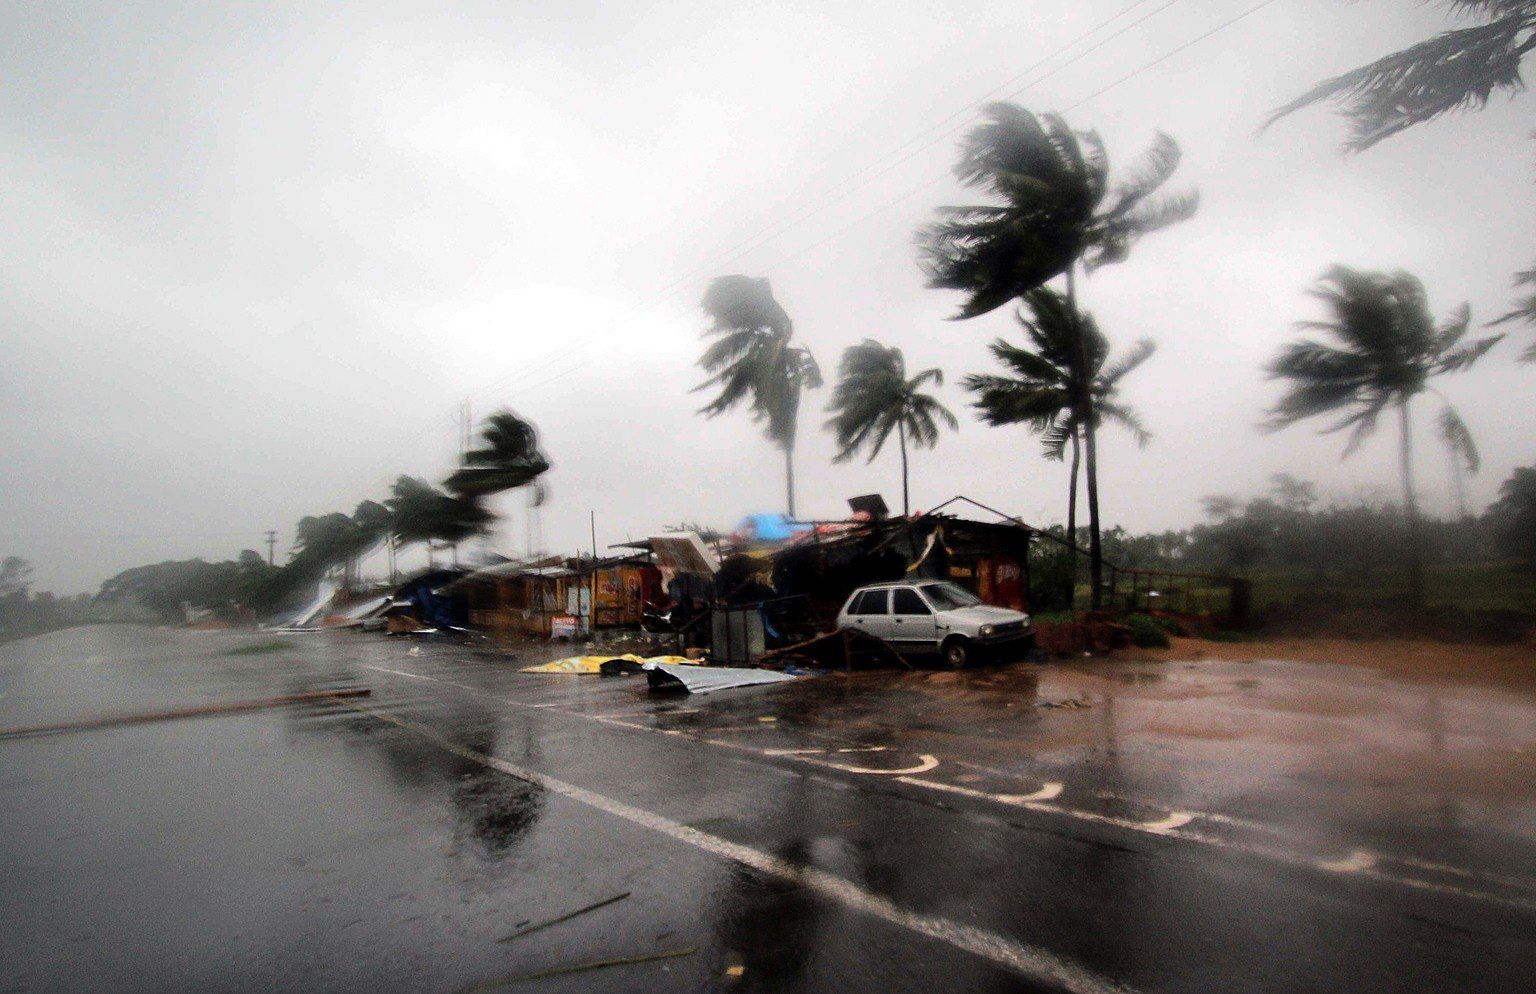 epa07544329 Severe winds after cyclone Fani made landfall in Odisha coast, at Konark in Puri district Odisha, India 03 May 2019. According to news reports Cyclone Fani made landfall in Puri district and will continue moving to West Bengal and Tamilnadu. National Disaster Response Force and the Indian Coast Guard have been put on high alert as Cyclone Fani is termed as 'Very Severe'  and around 800,000 people were evacuated along the eastern coast of India with Indian Army and Indian Air Force units put on standby.  EPA/STR